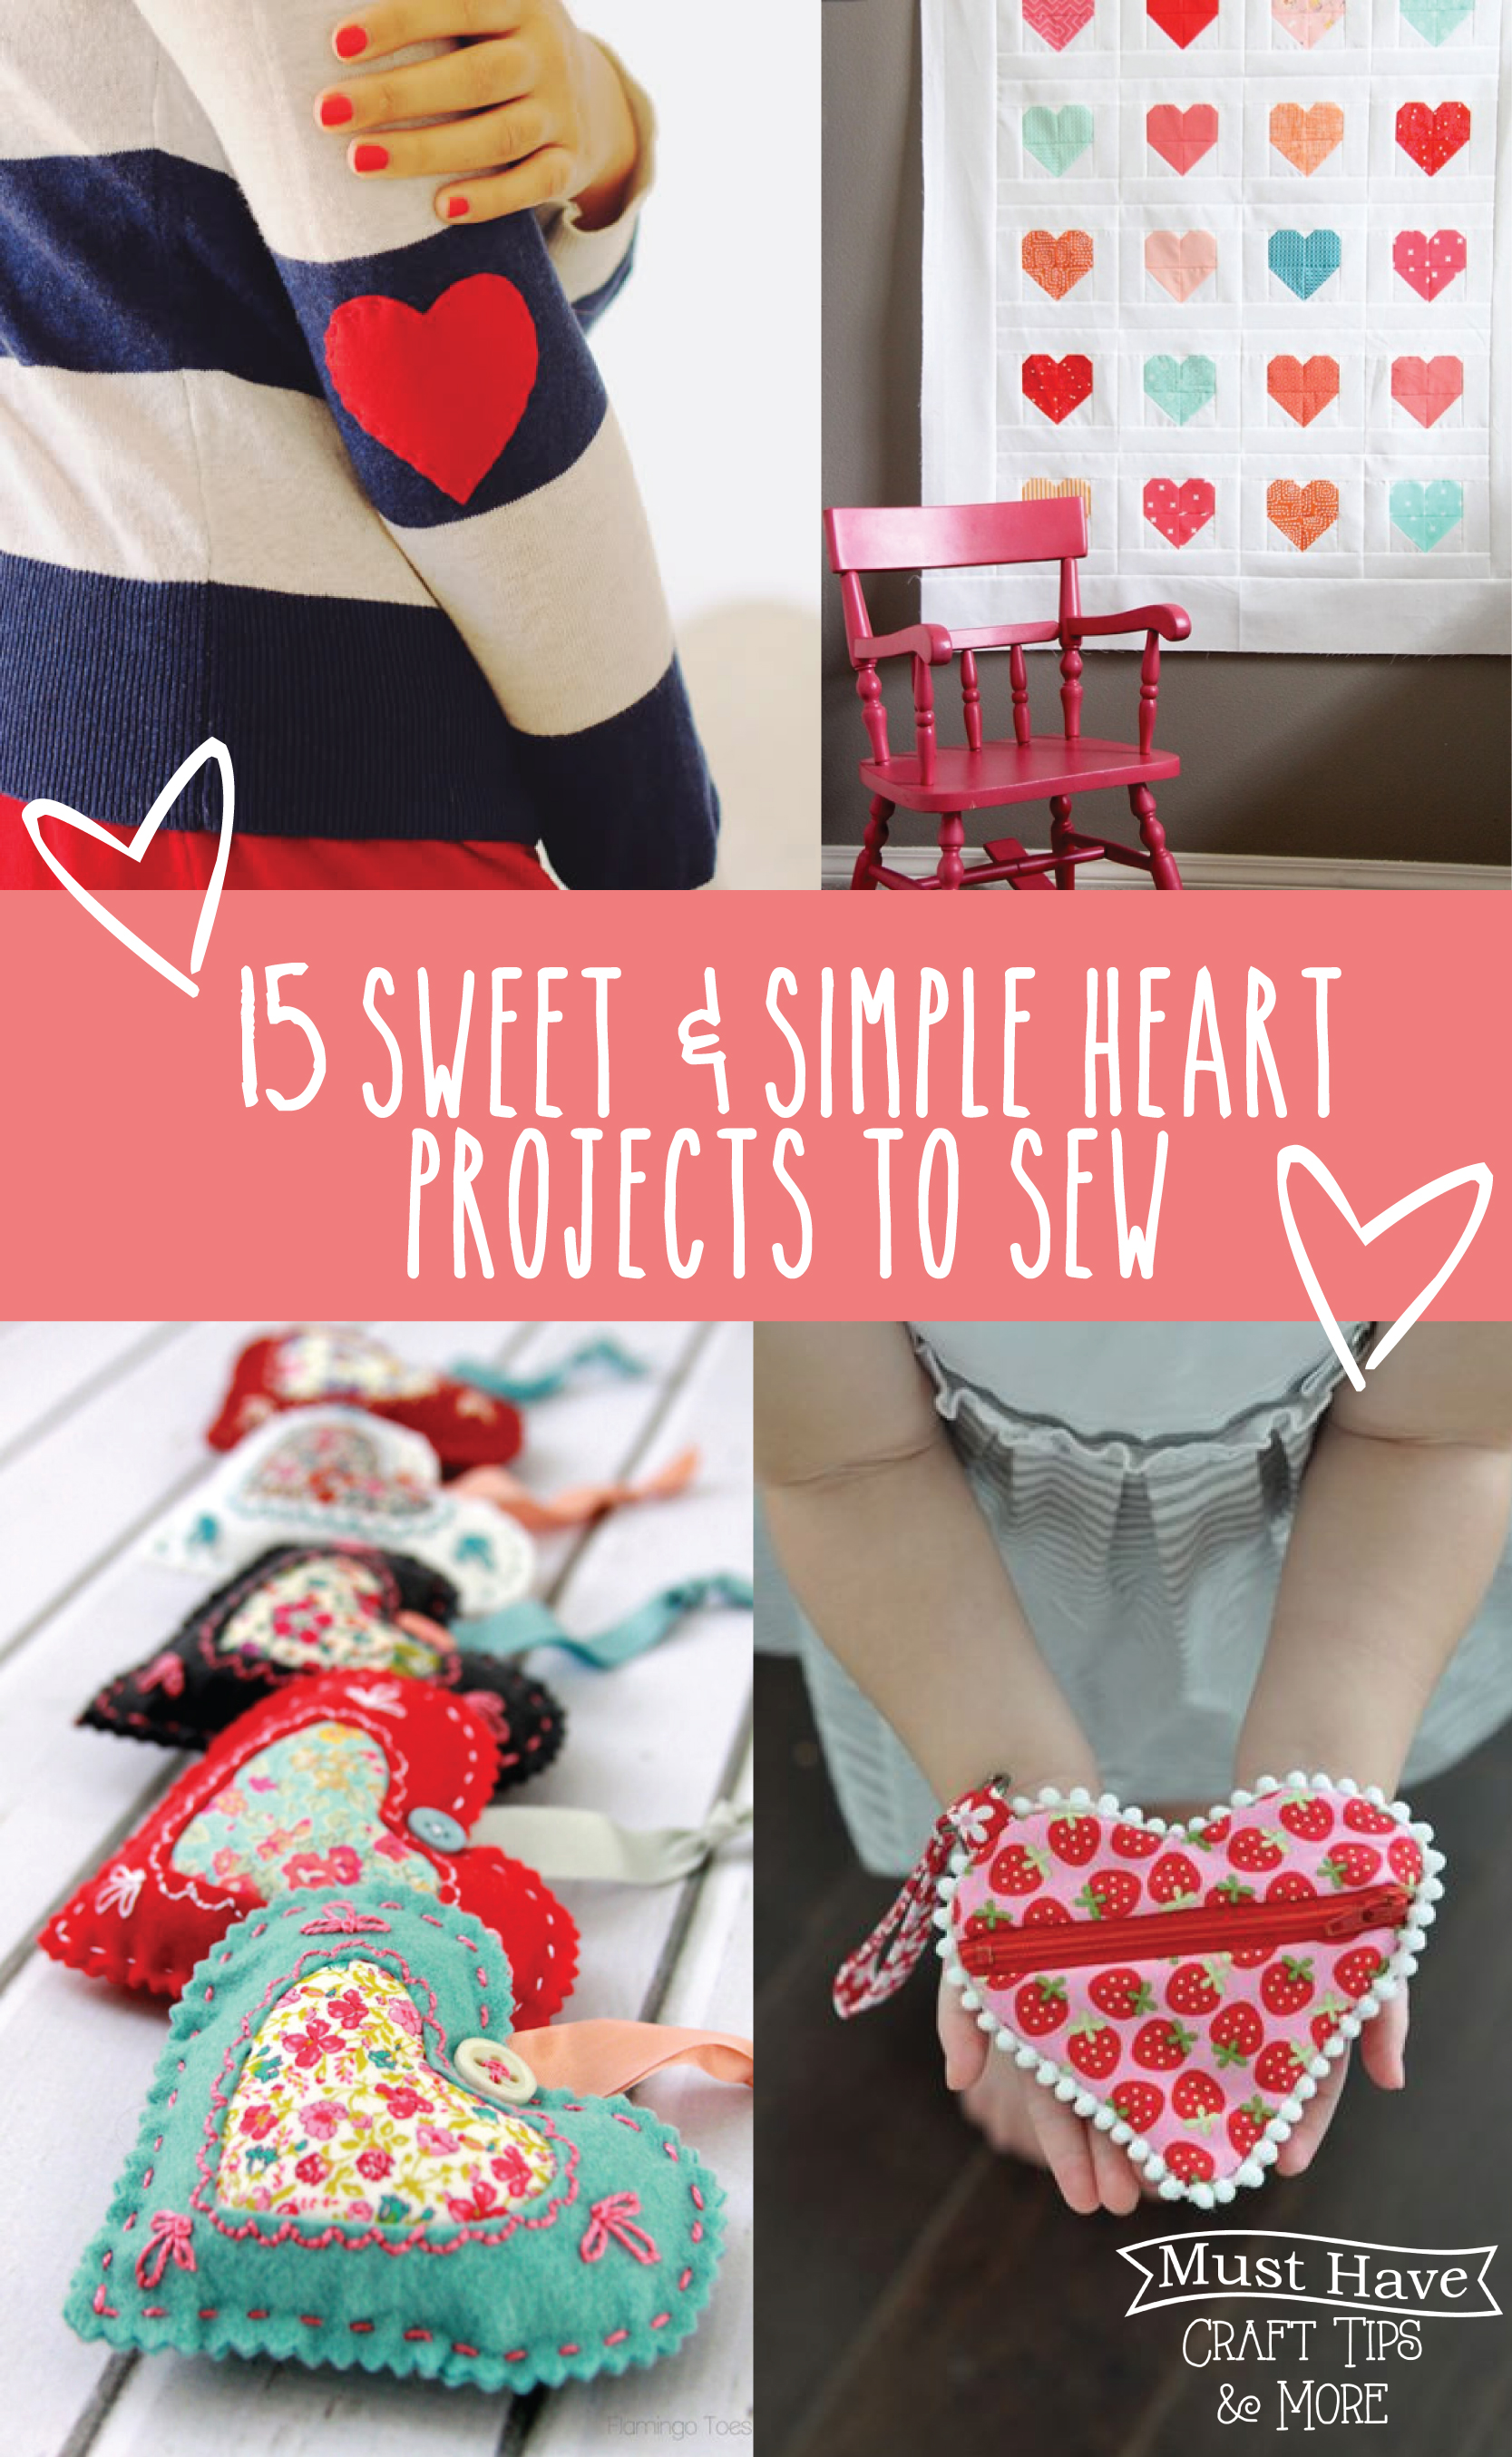 Sewing with Hearts - Clothes, Quilts and More